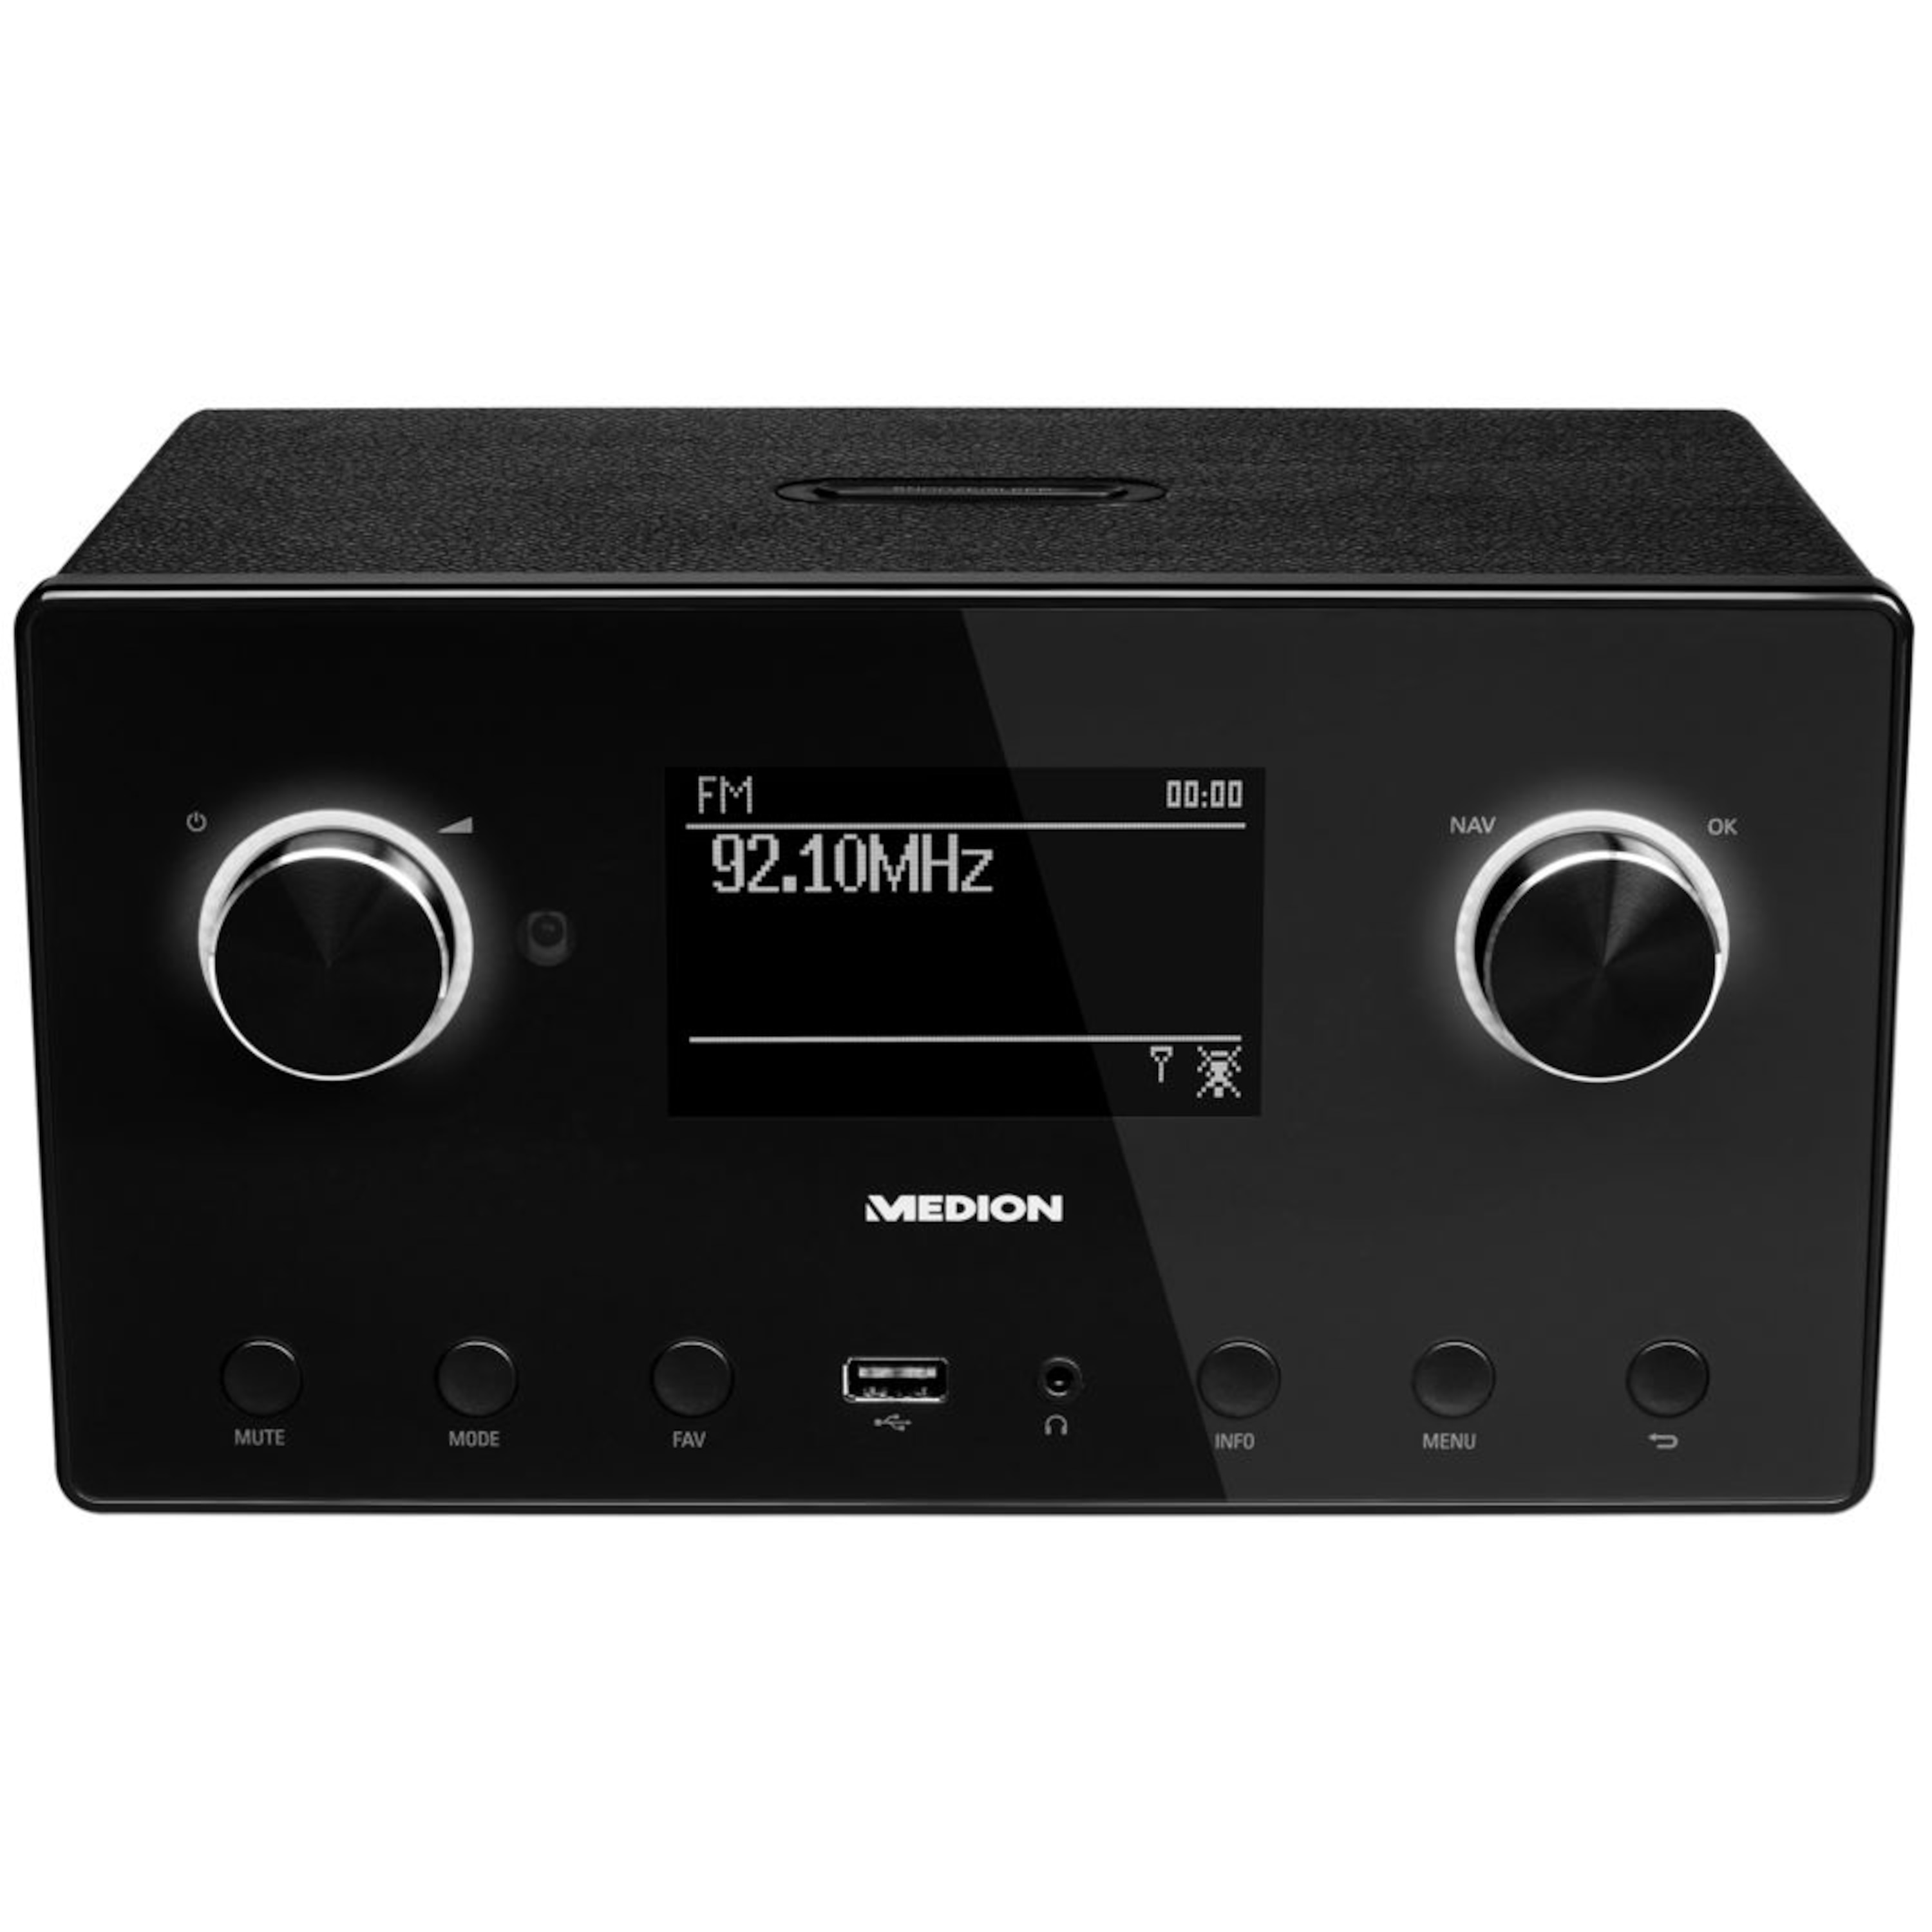 "MEDION® LIFE® P85080 WLAN Stereo Internetradio, 8,9 cm (3,5"") LC-Display, 15.000 Internet Radiosender, DAB+ Empfänger, Spotify® Connect, USB, Bluetooth®, 2 x 7,5 W RMS"